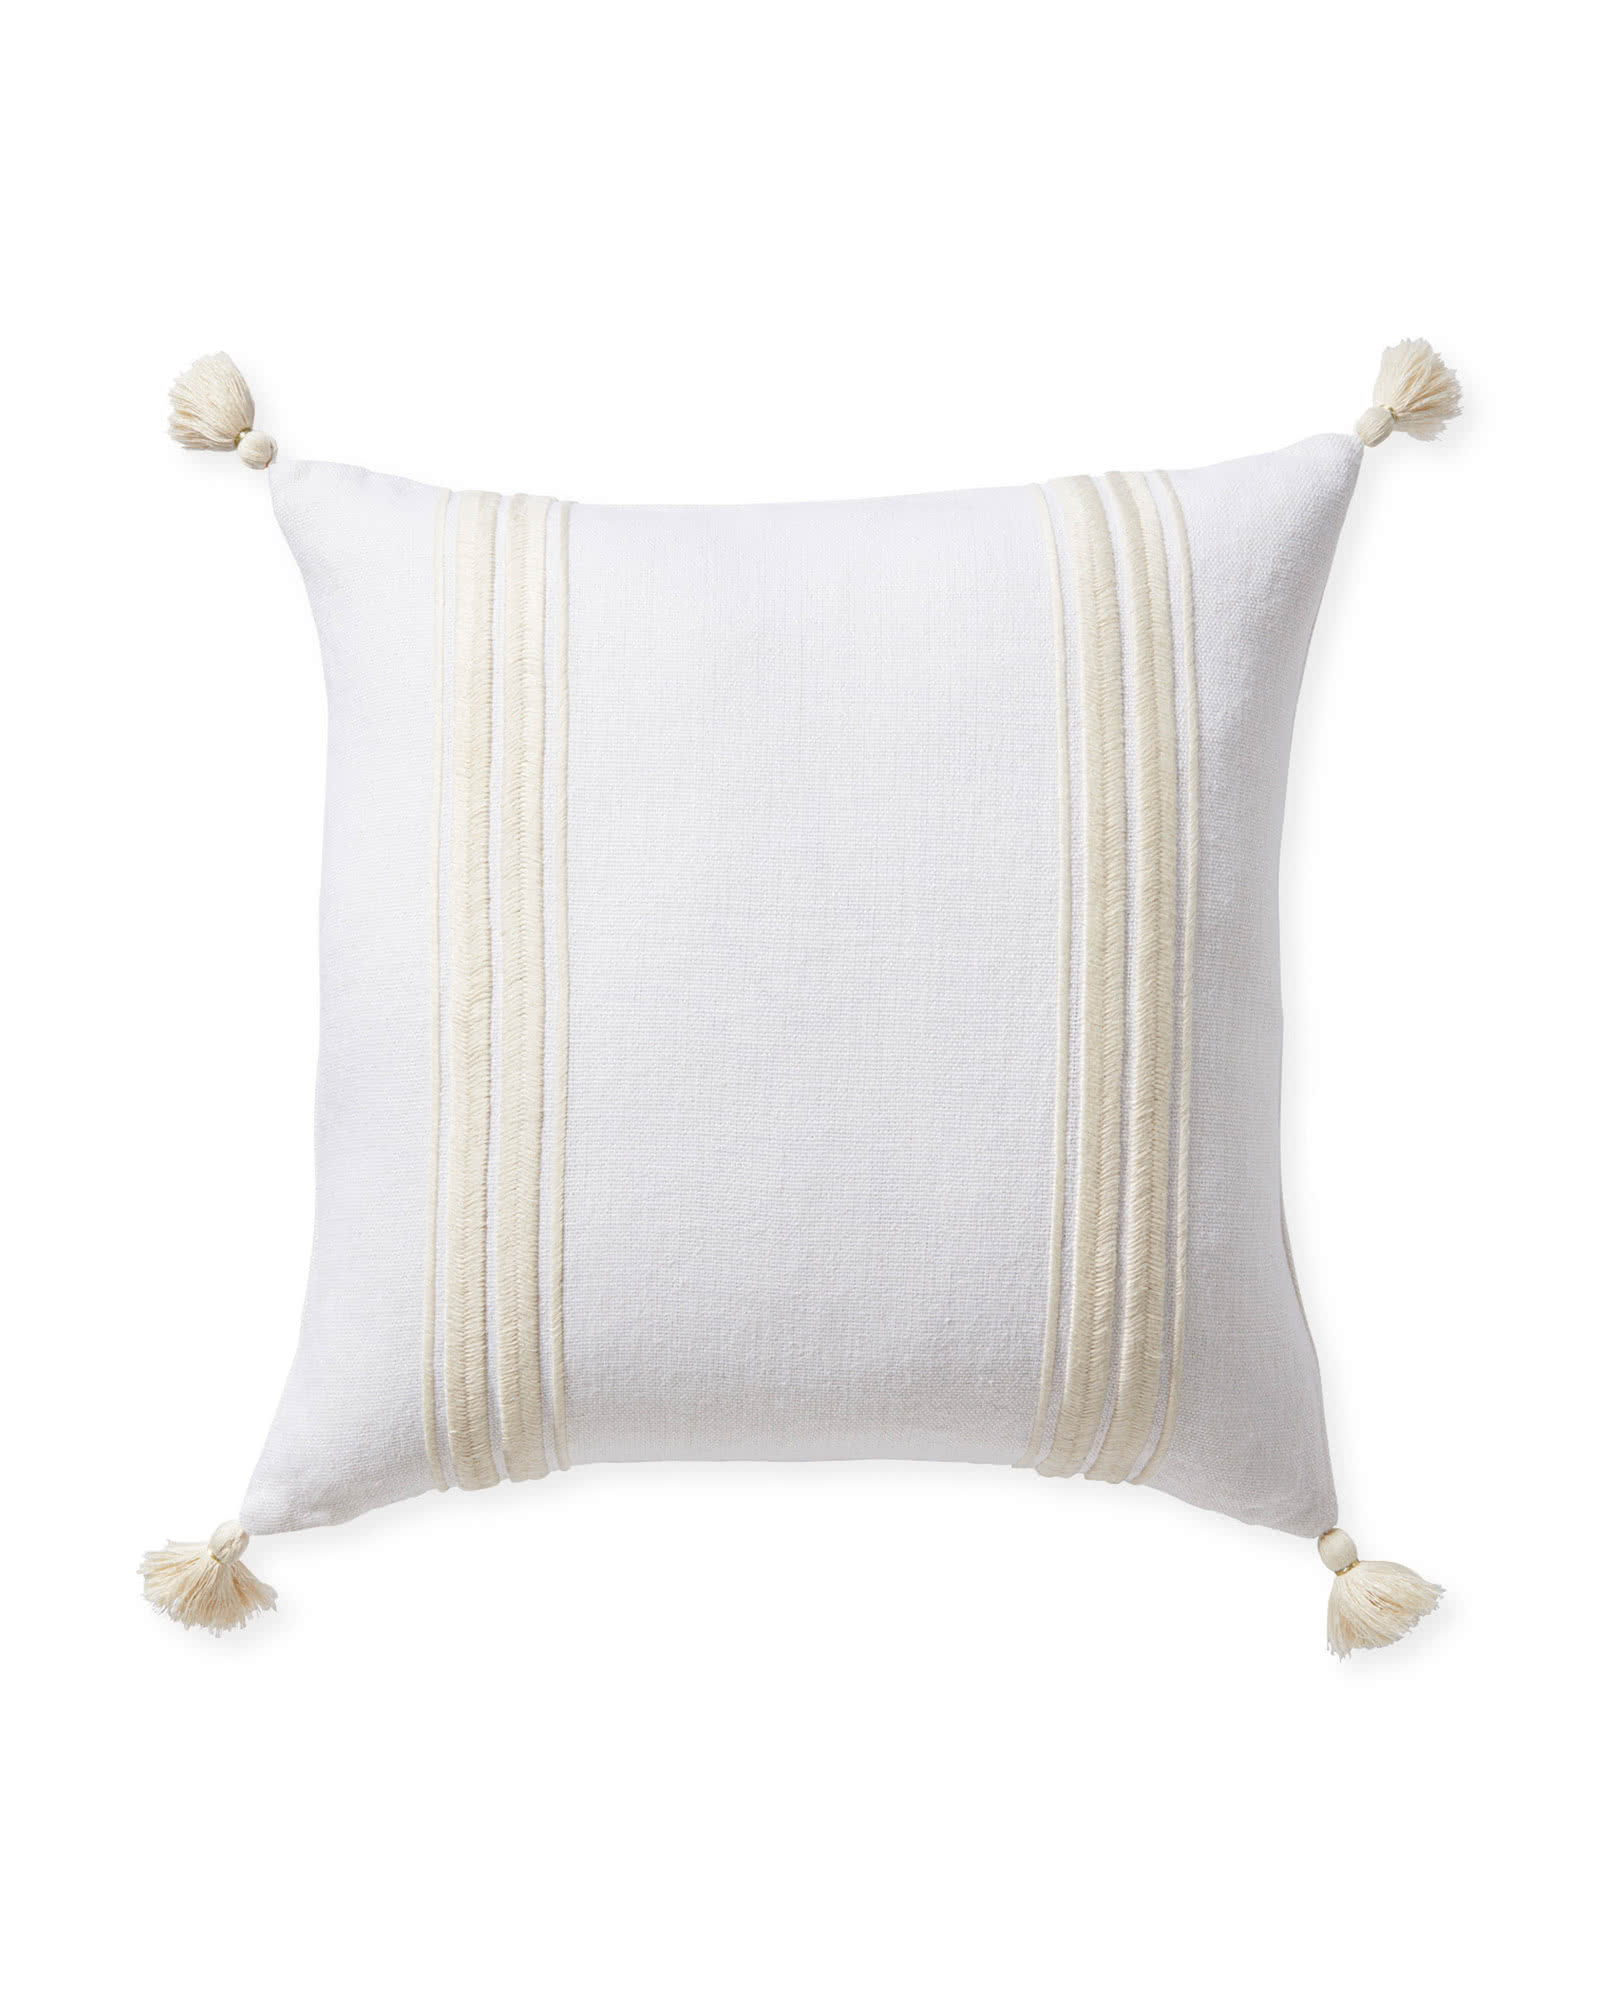 Addie Stripe Tassel Pillow Cover, White/Ivory